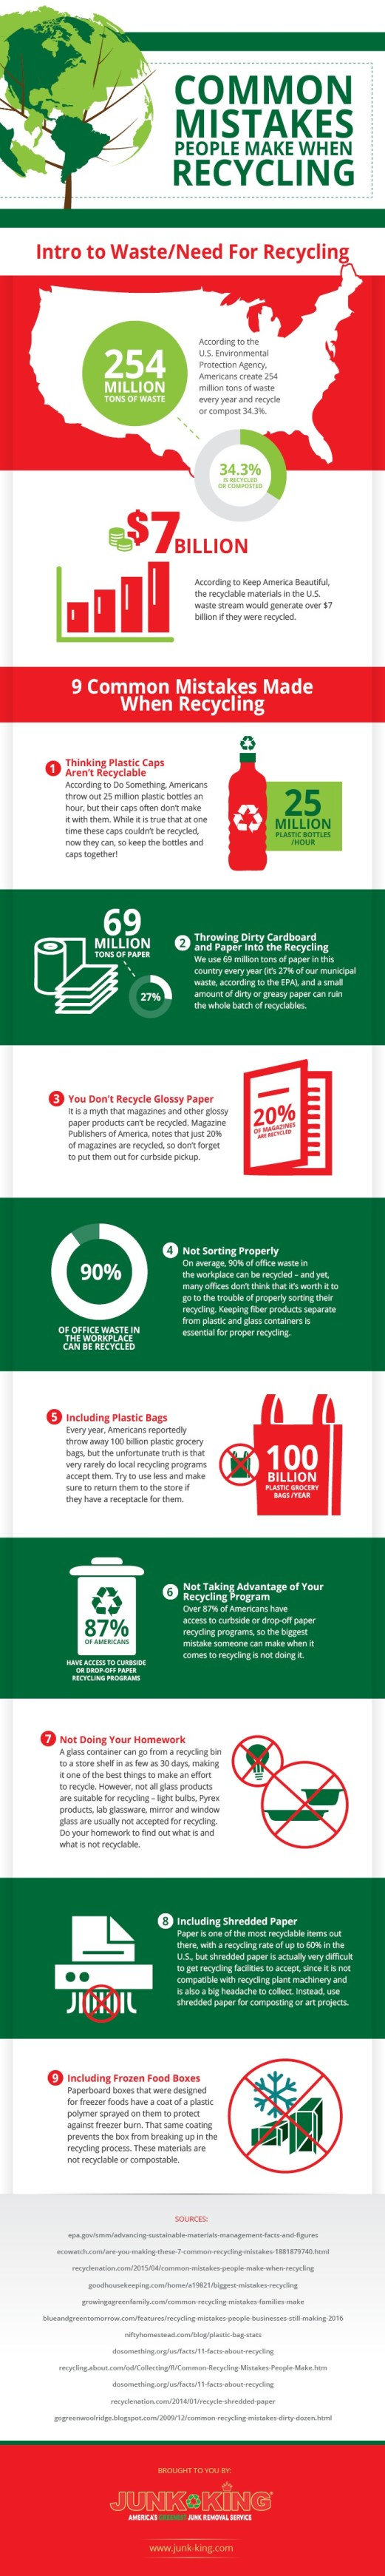 Common Recycling Mistakes